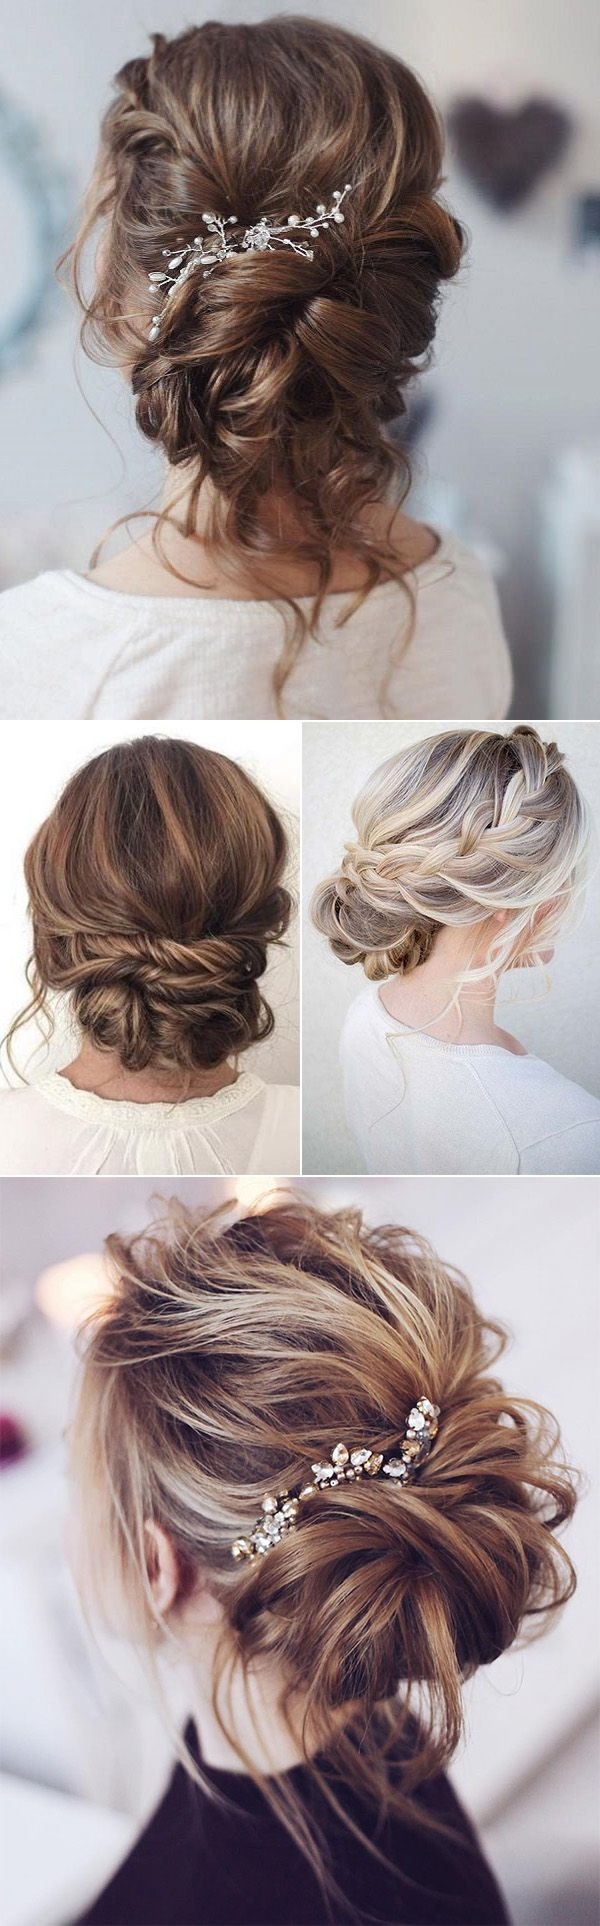 25 drop-dead bridal updo hairstyles ideas for any wedding